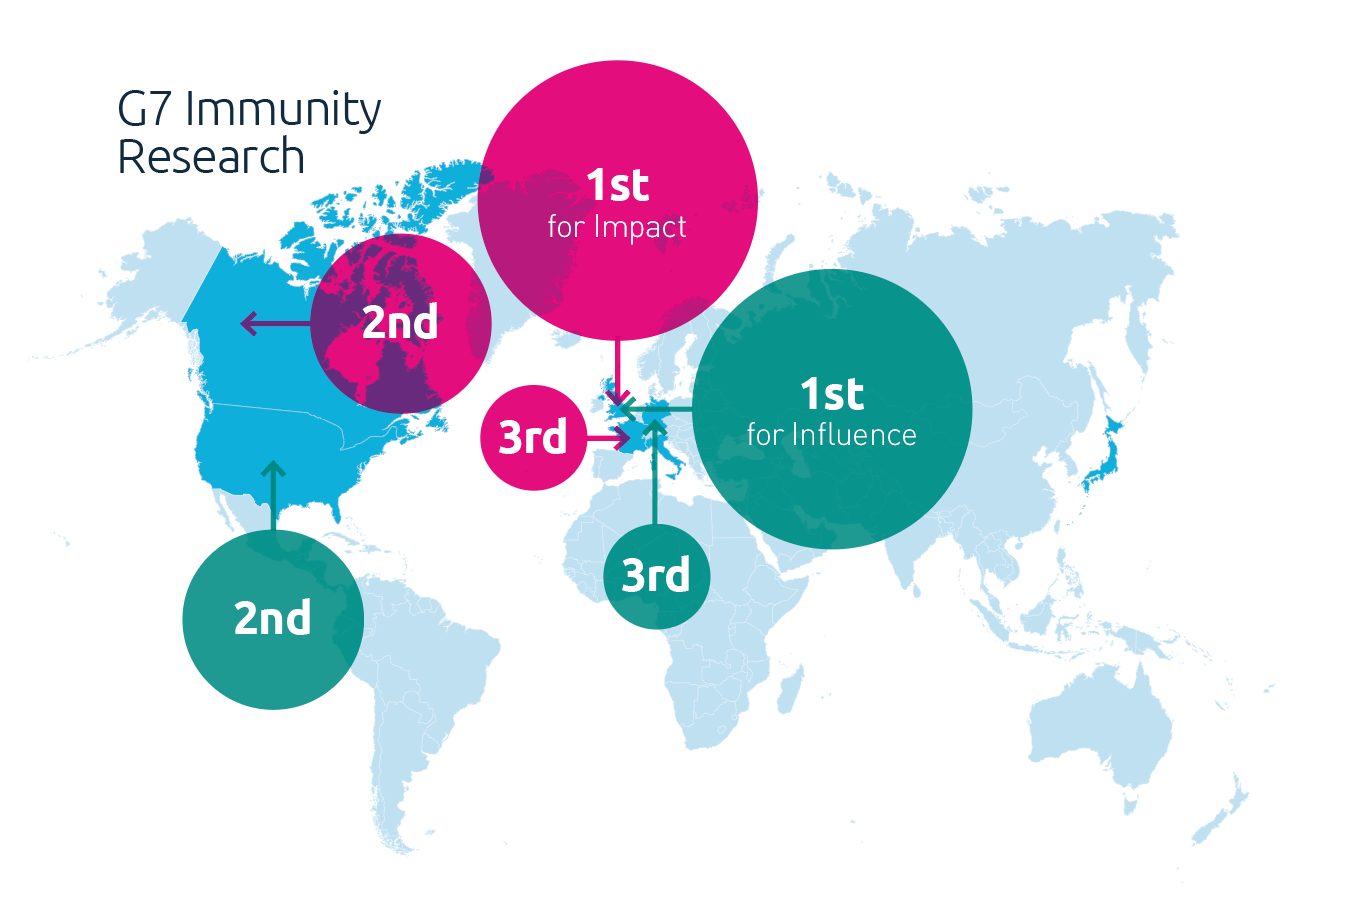 G7 Immunity Research map - UK 1st for impact